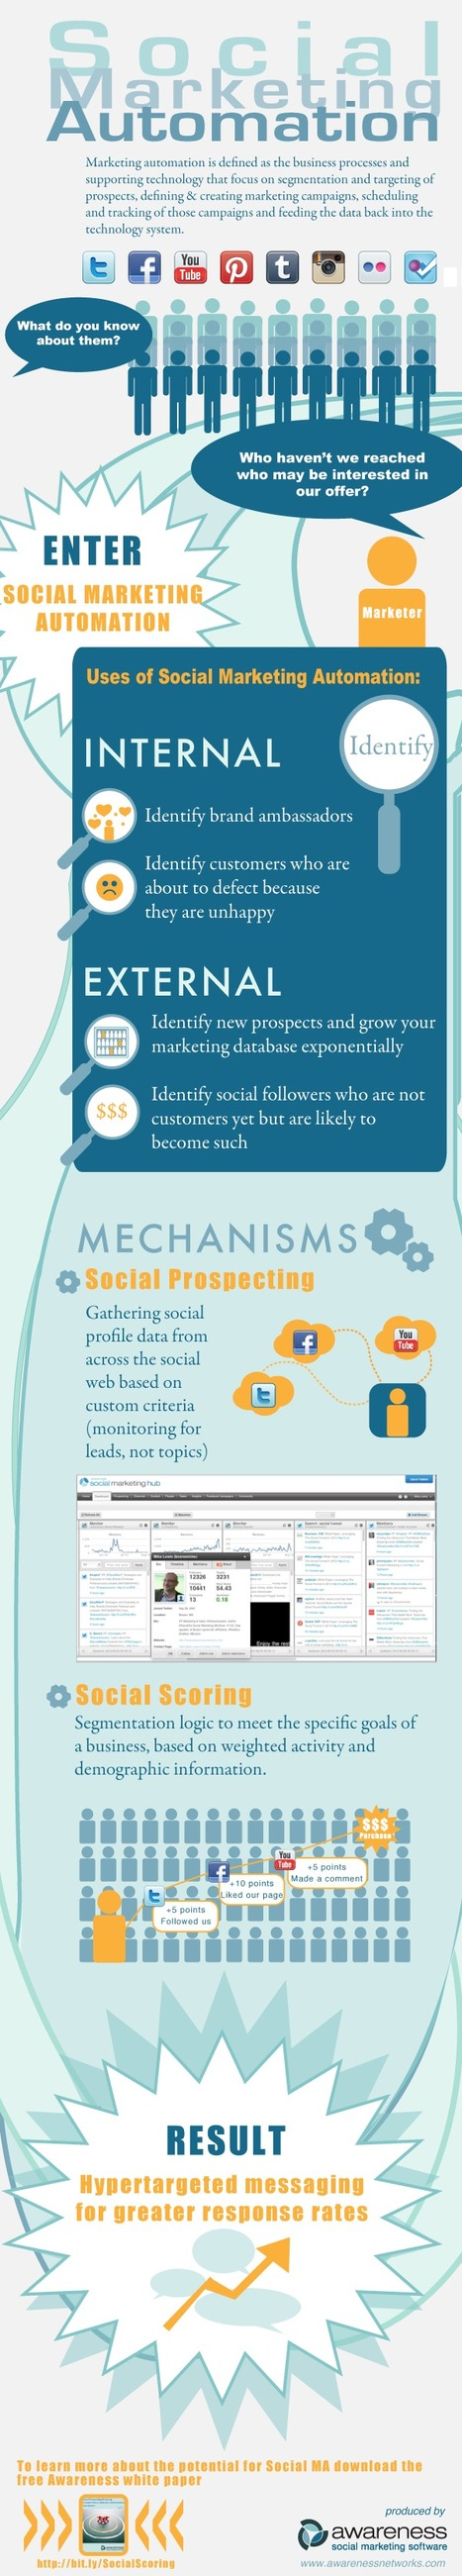 Case Study: Social Media Automation: How it works and Facts | All Infographics | digital marketing strategy | Scoop.it